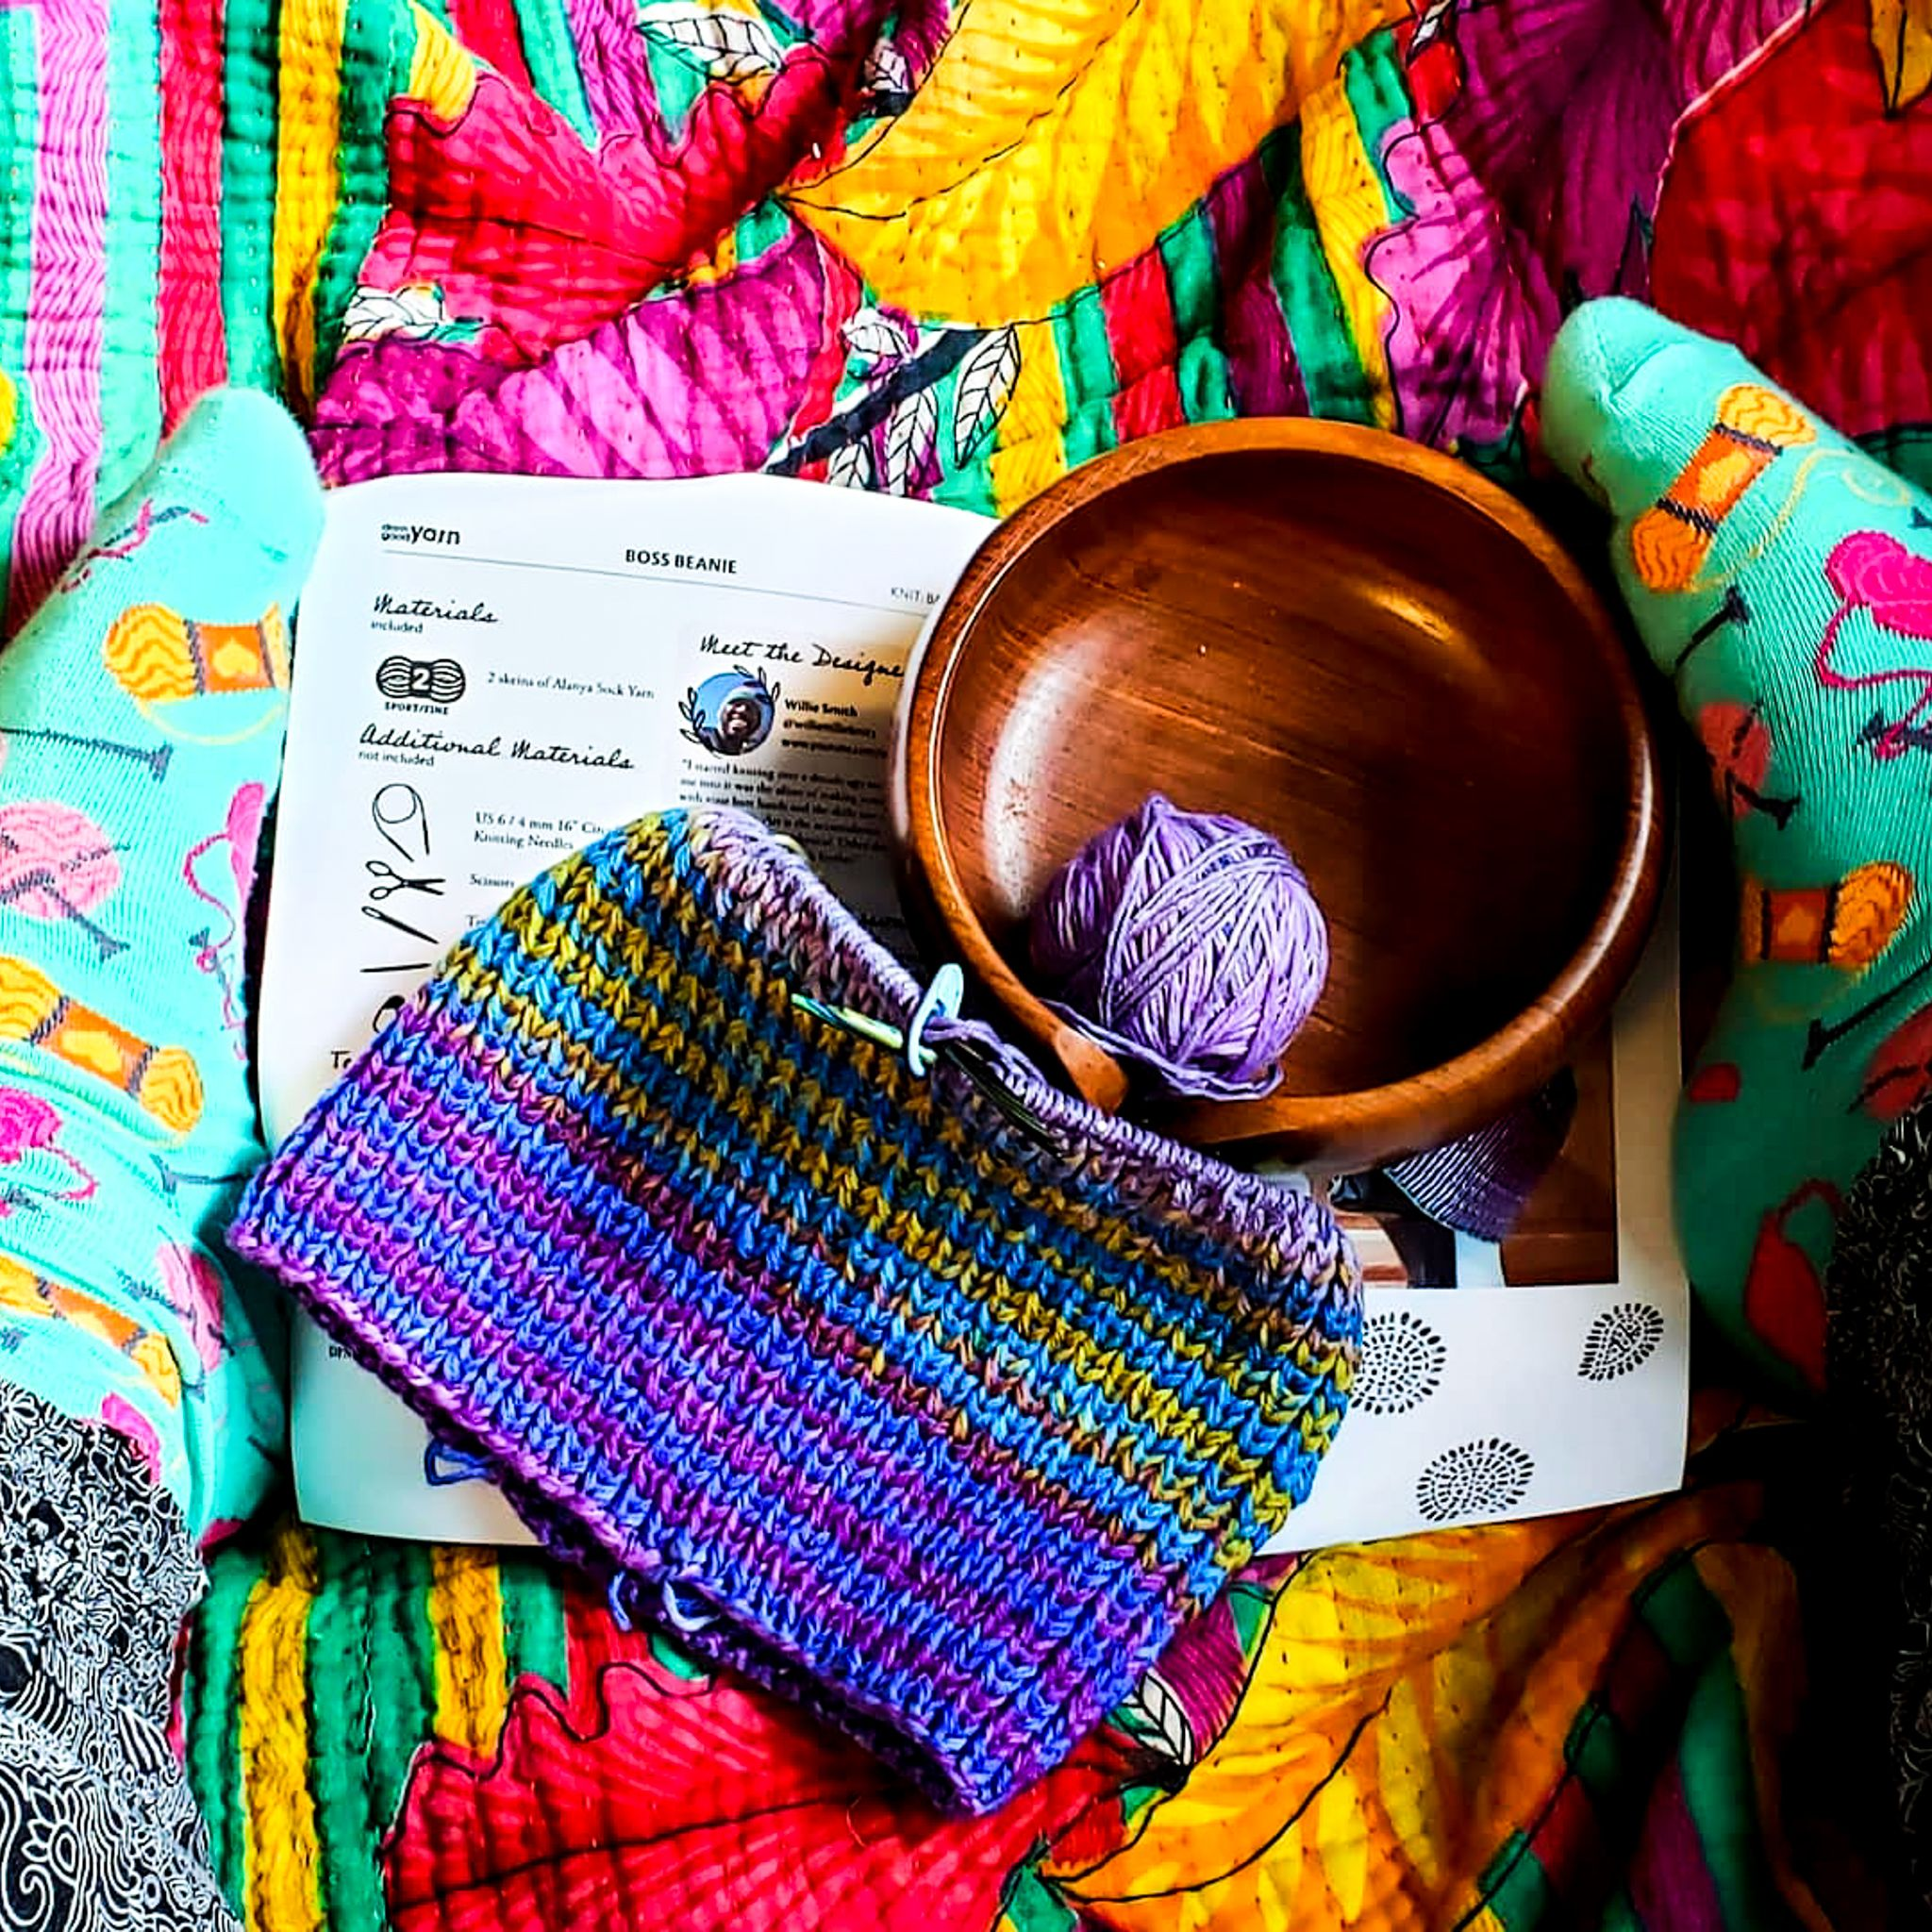 Photograph of boss beanie work in progress showing purple, blue, teal and yellow striped sections complete on top of colorful blanket with yarn bowl.